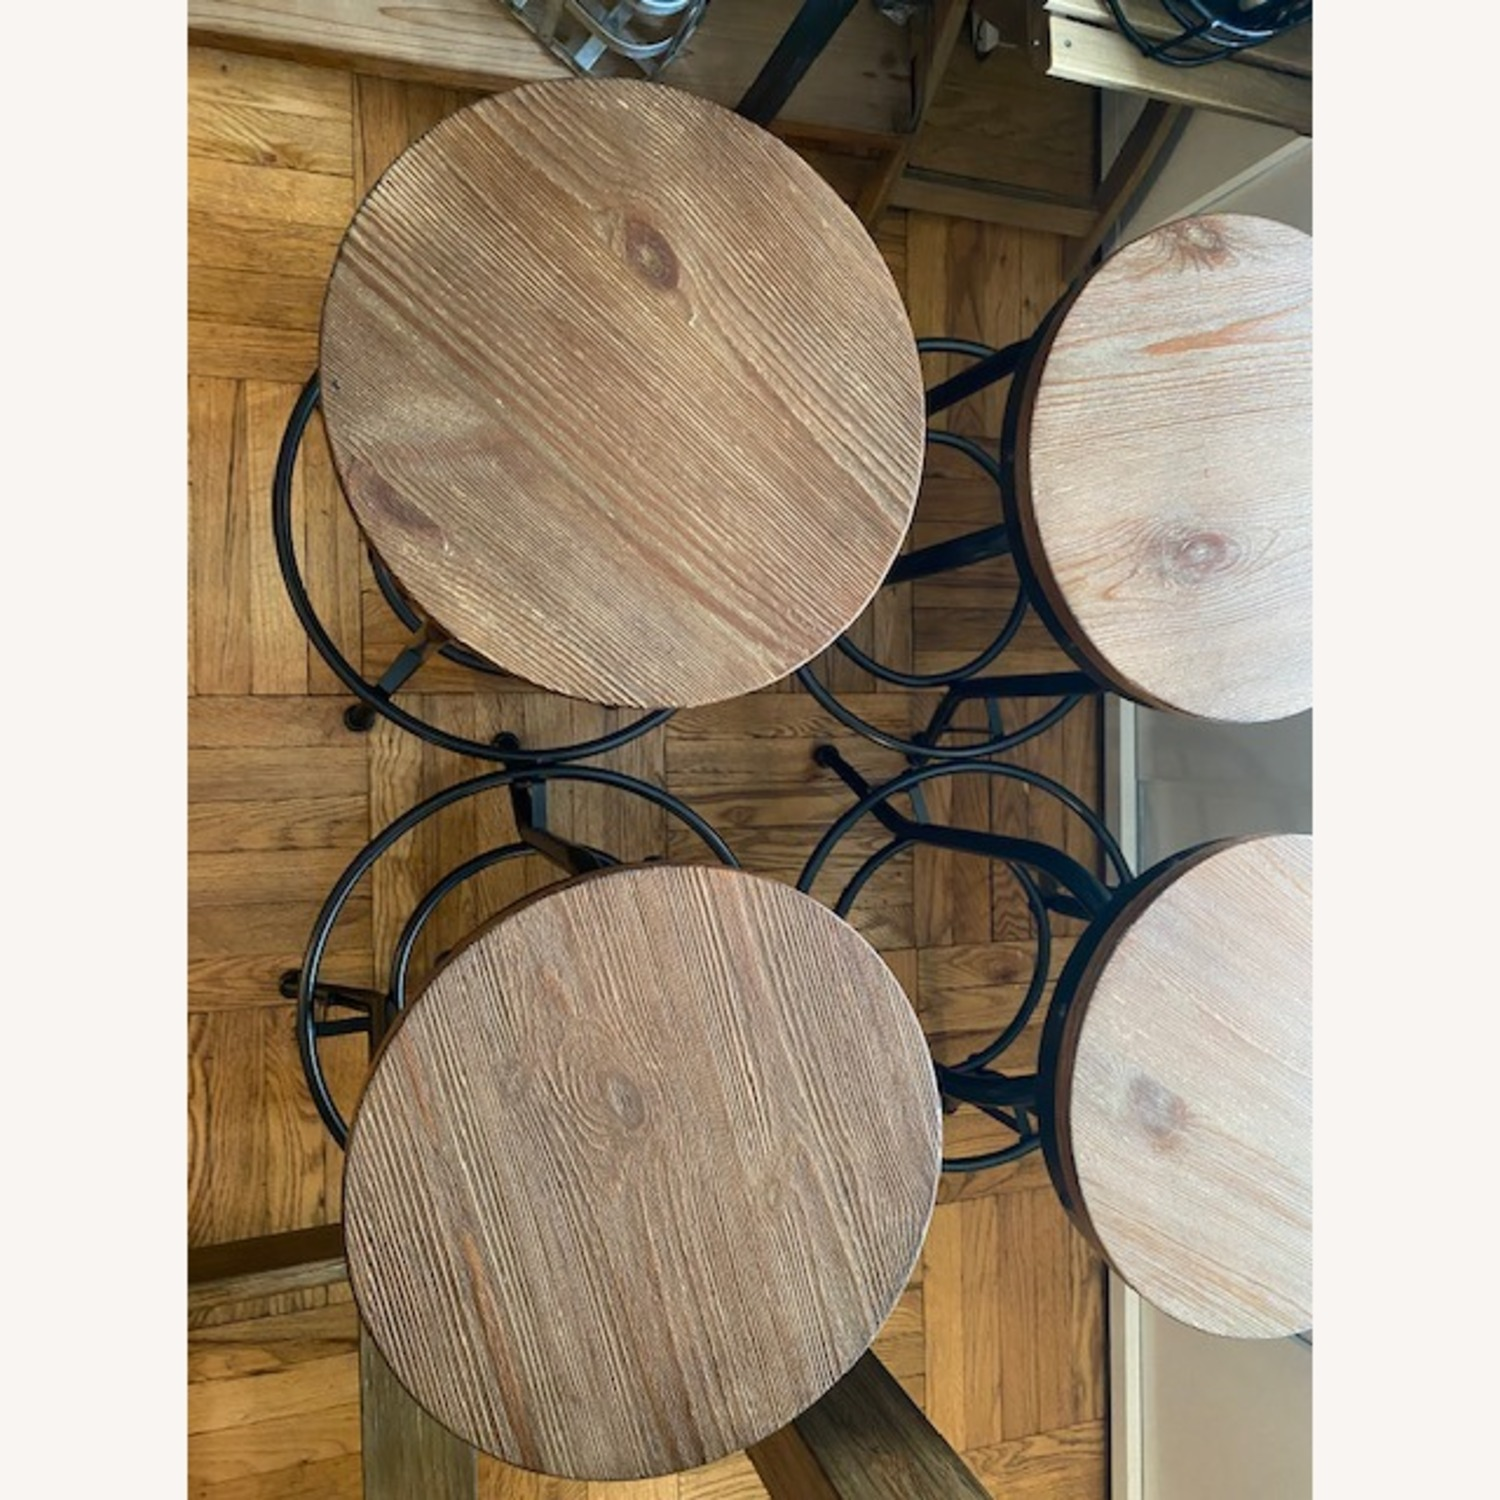 Ashley Furniture Dining Room Bar Table and Bar Stools (4) - image-7